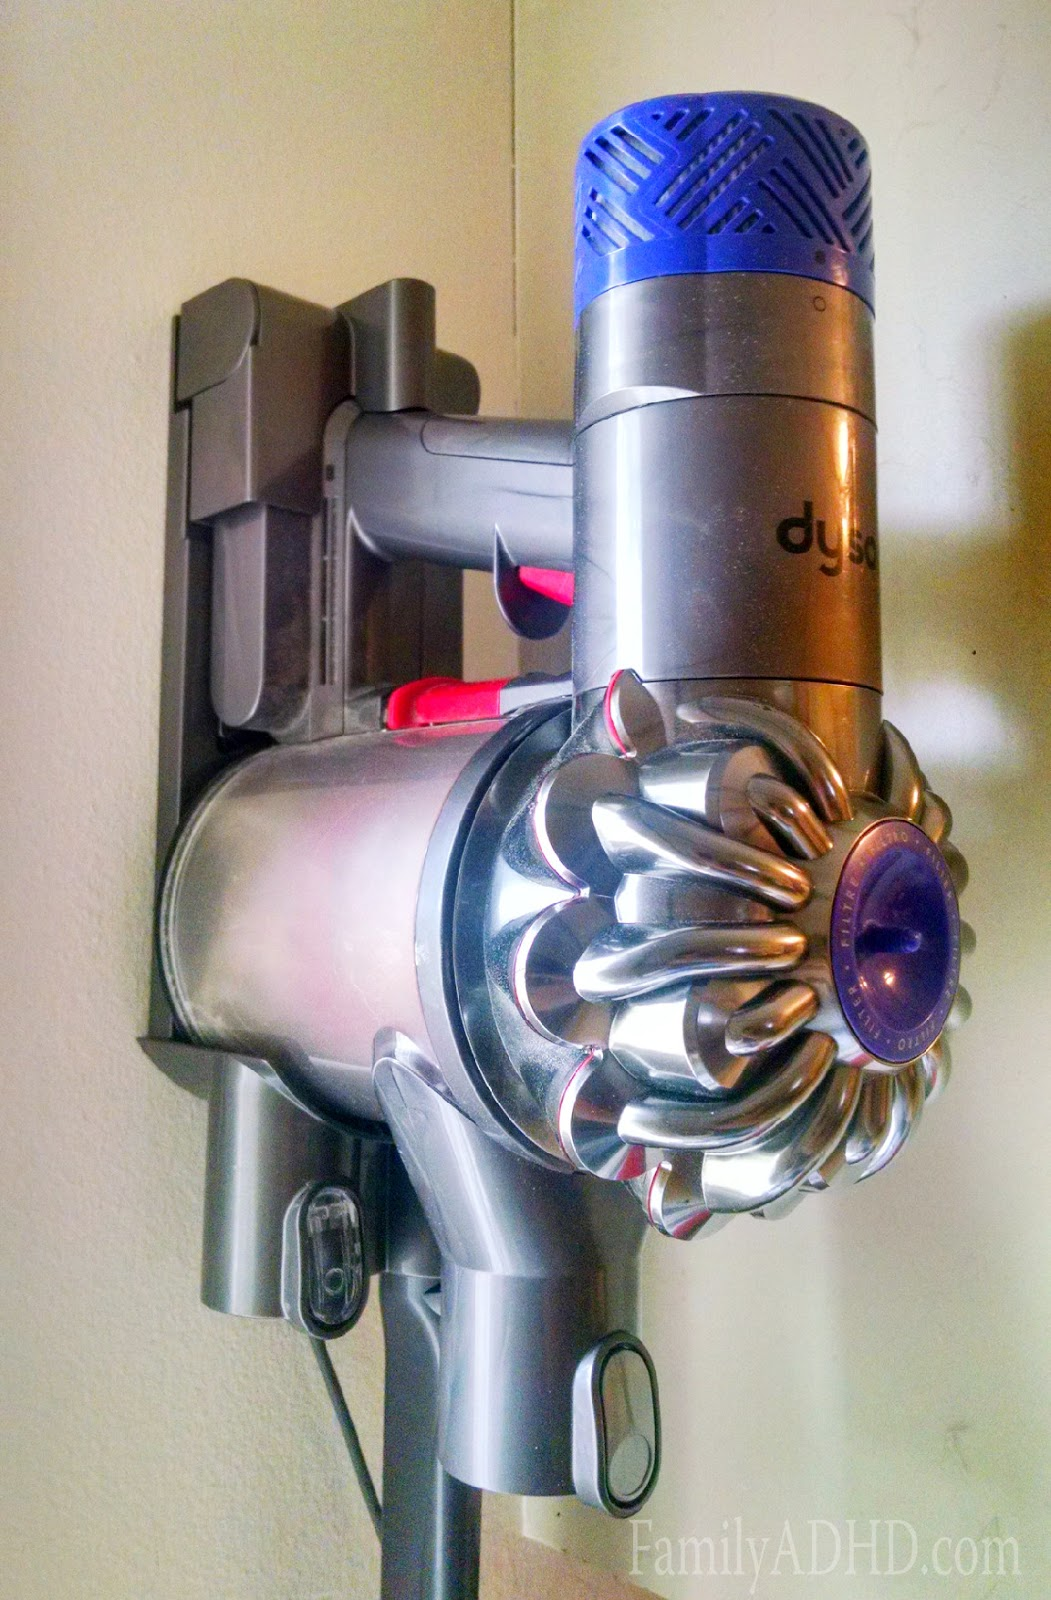 dyson v6 absolute cordless vacuum review familyadhd. Black Bedroom Furniture Sets. Home Design Ideas